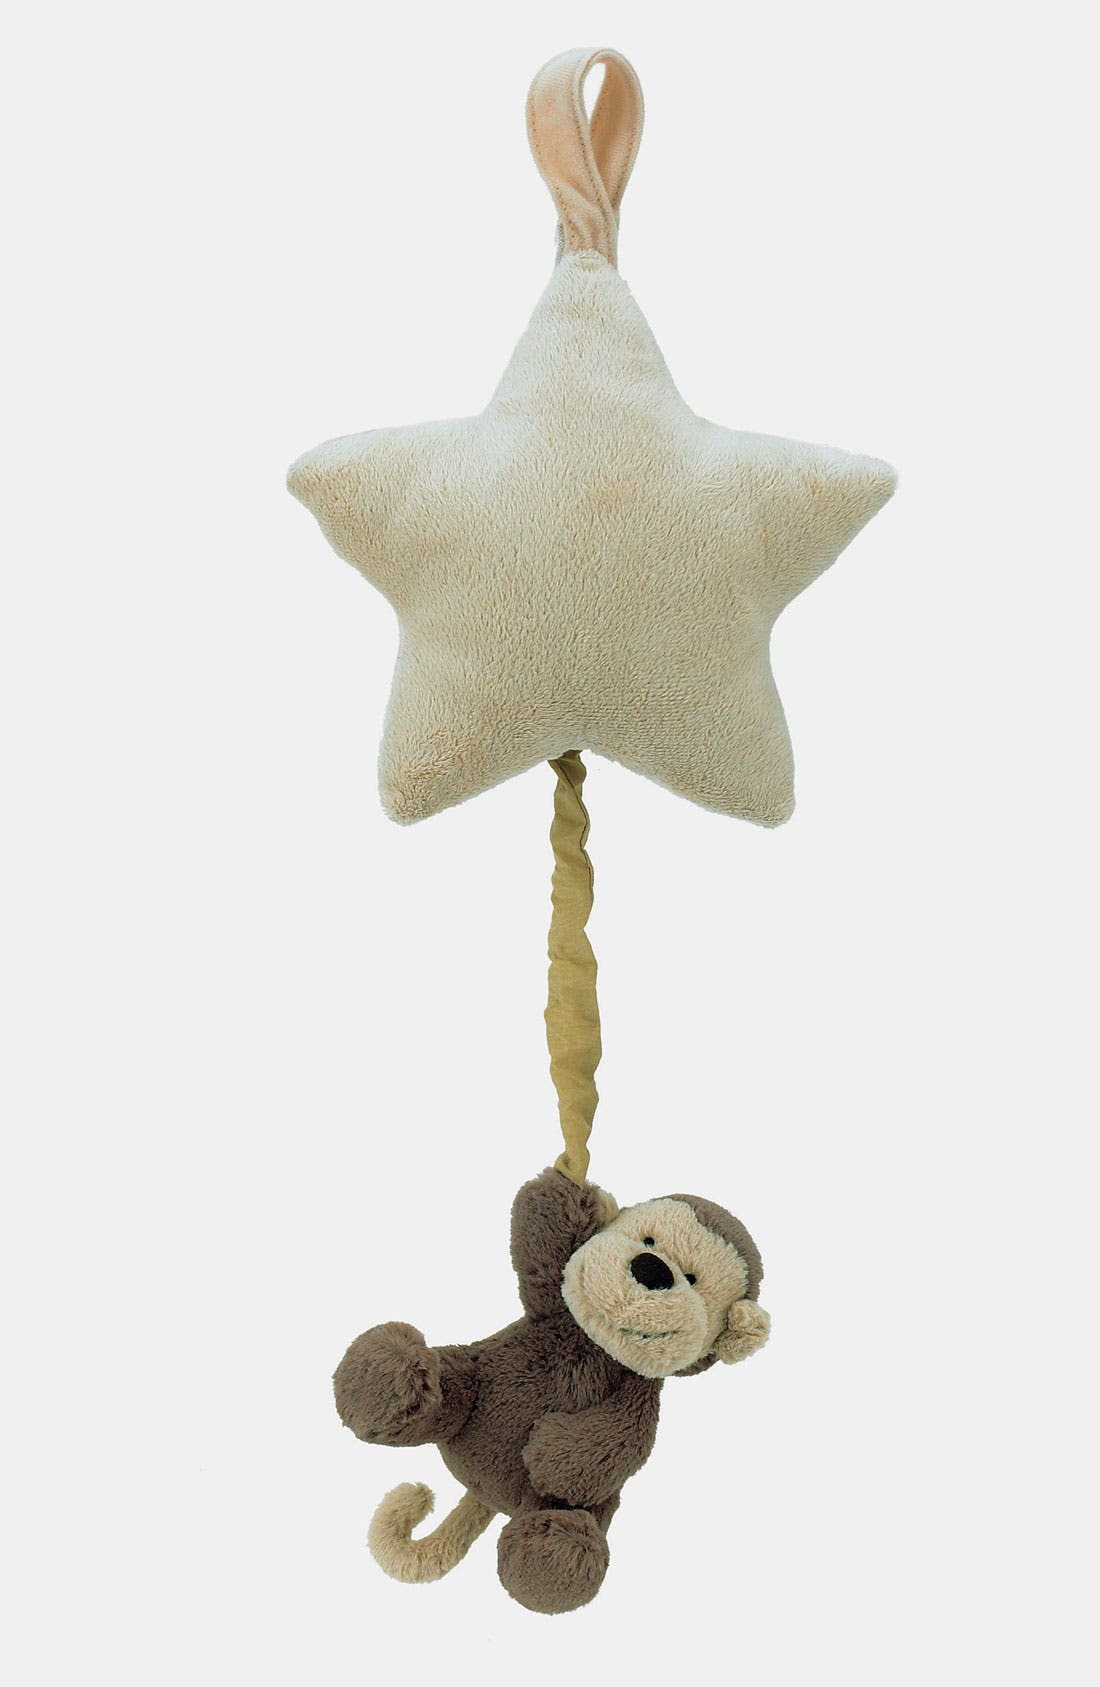 Alternate Image 1 Selected - Jellycat 'Monkey Star' Musical Toy